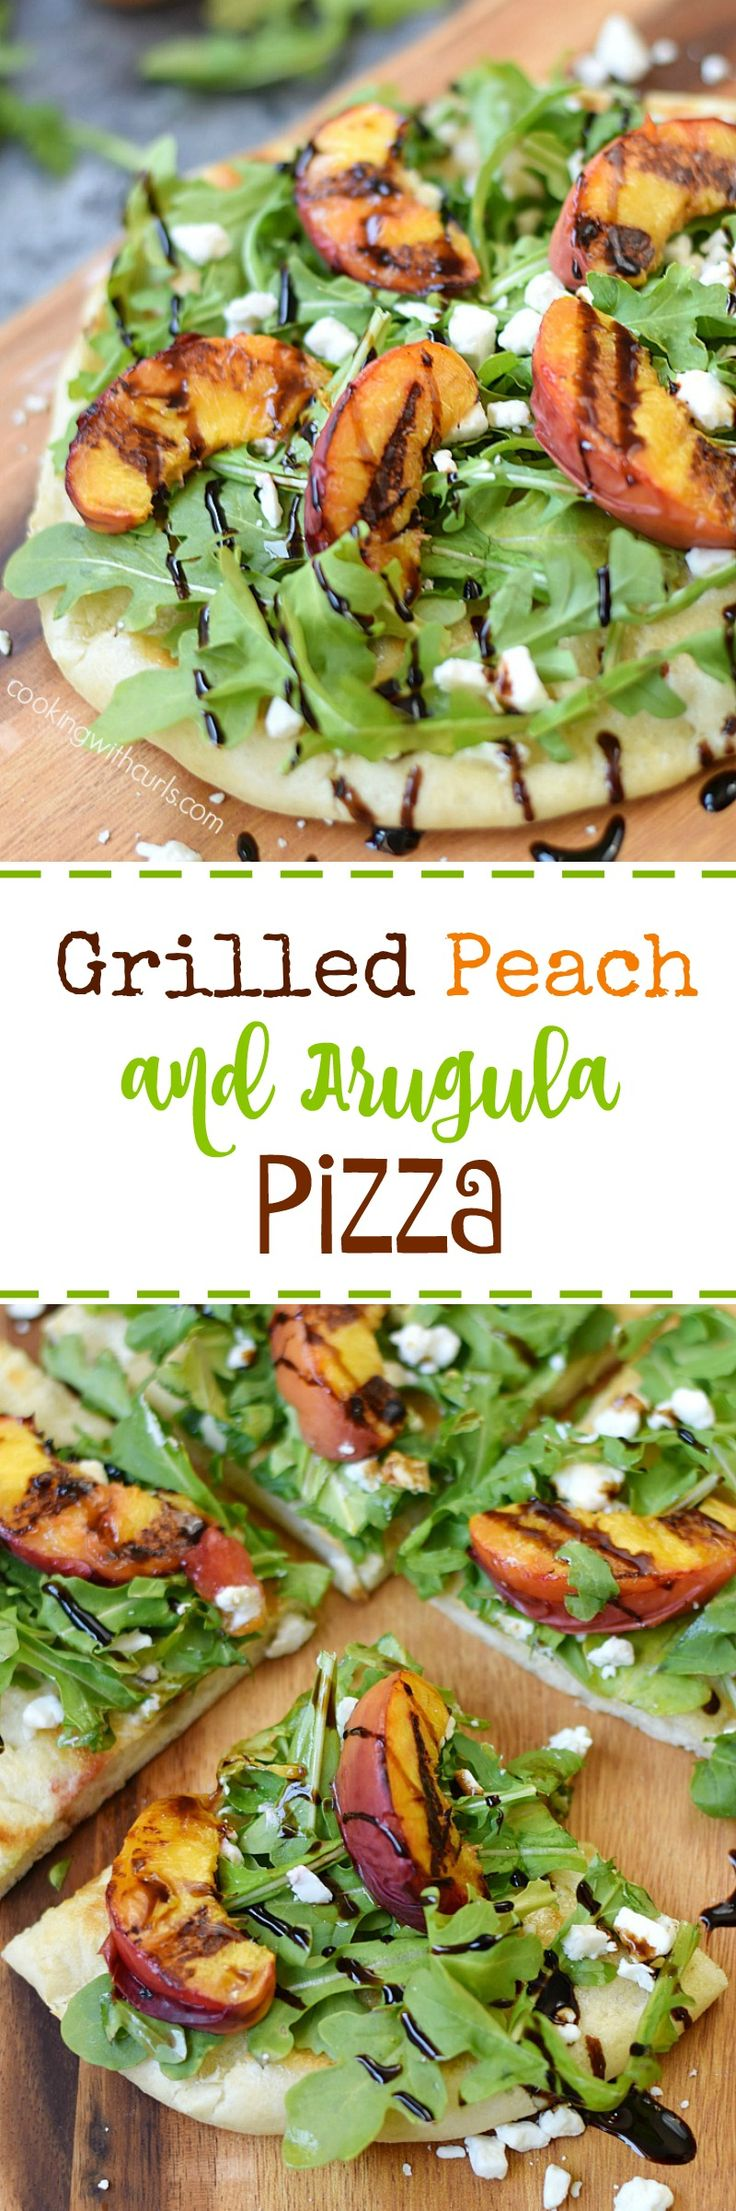 Fire up the grill and celebrate the freshest summer produce with this Grilled Peach and Arugula Pizza topped with goat cheese and drizzled with balsamic glaze | cookingwithcurls.com #FeastNDevour